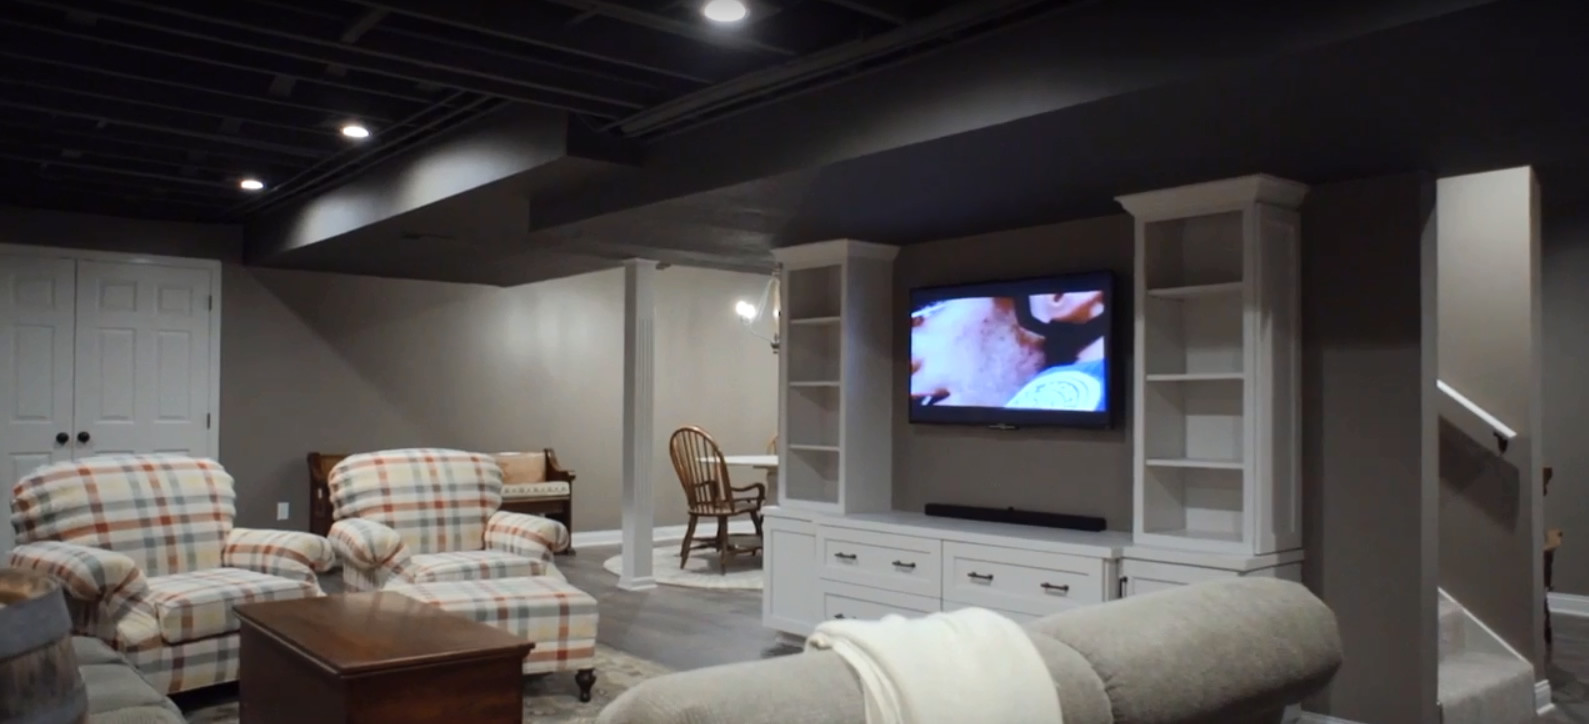 Ideas For Basement Renovation Snap Goods